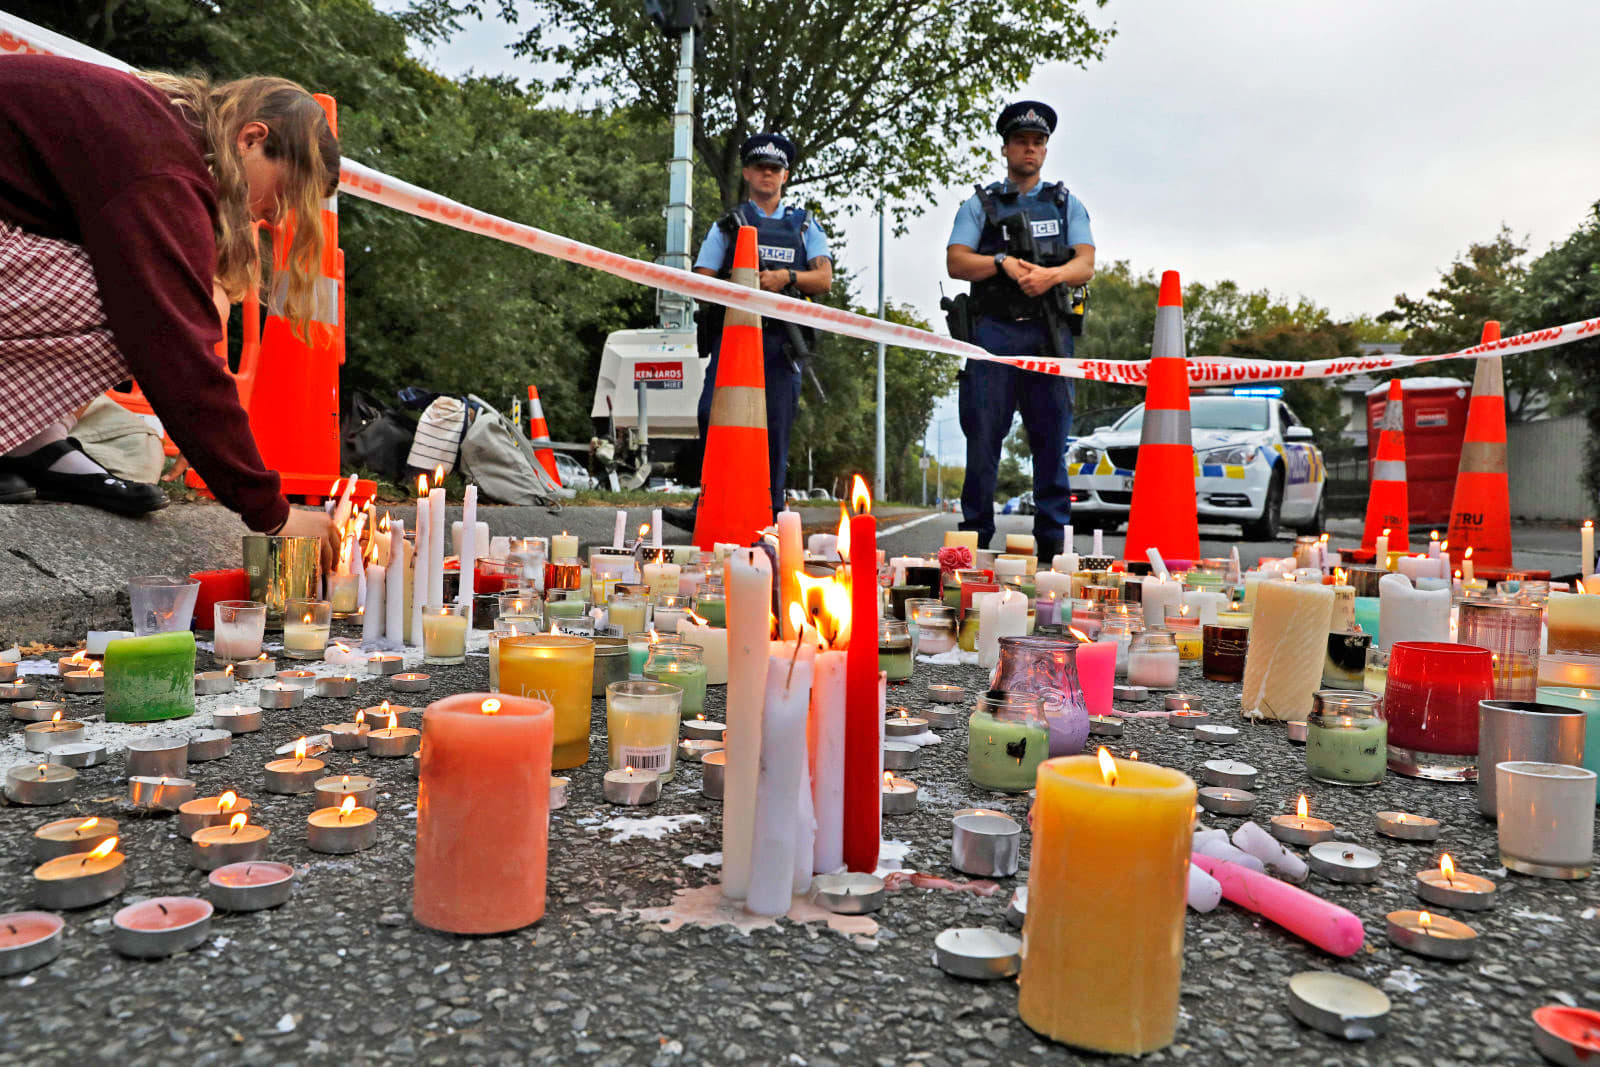 Facebook Google And Others Join Christchurch Call To Curb